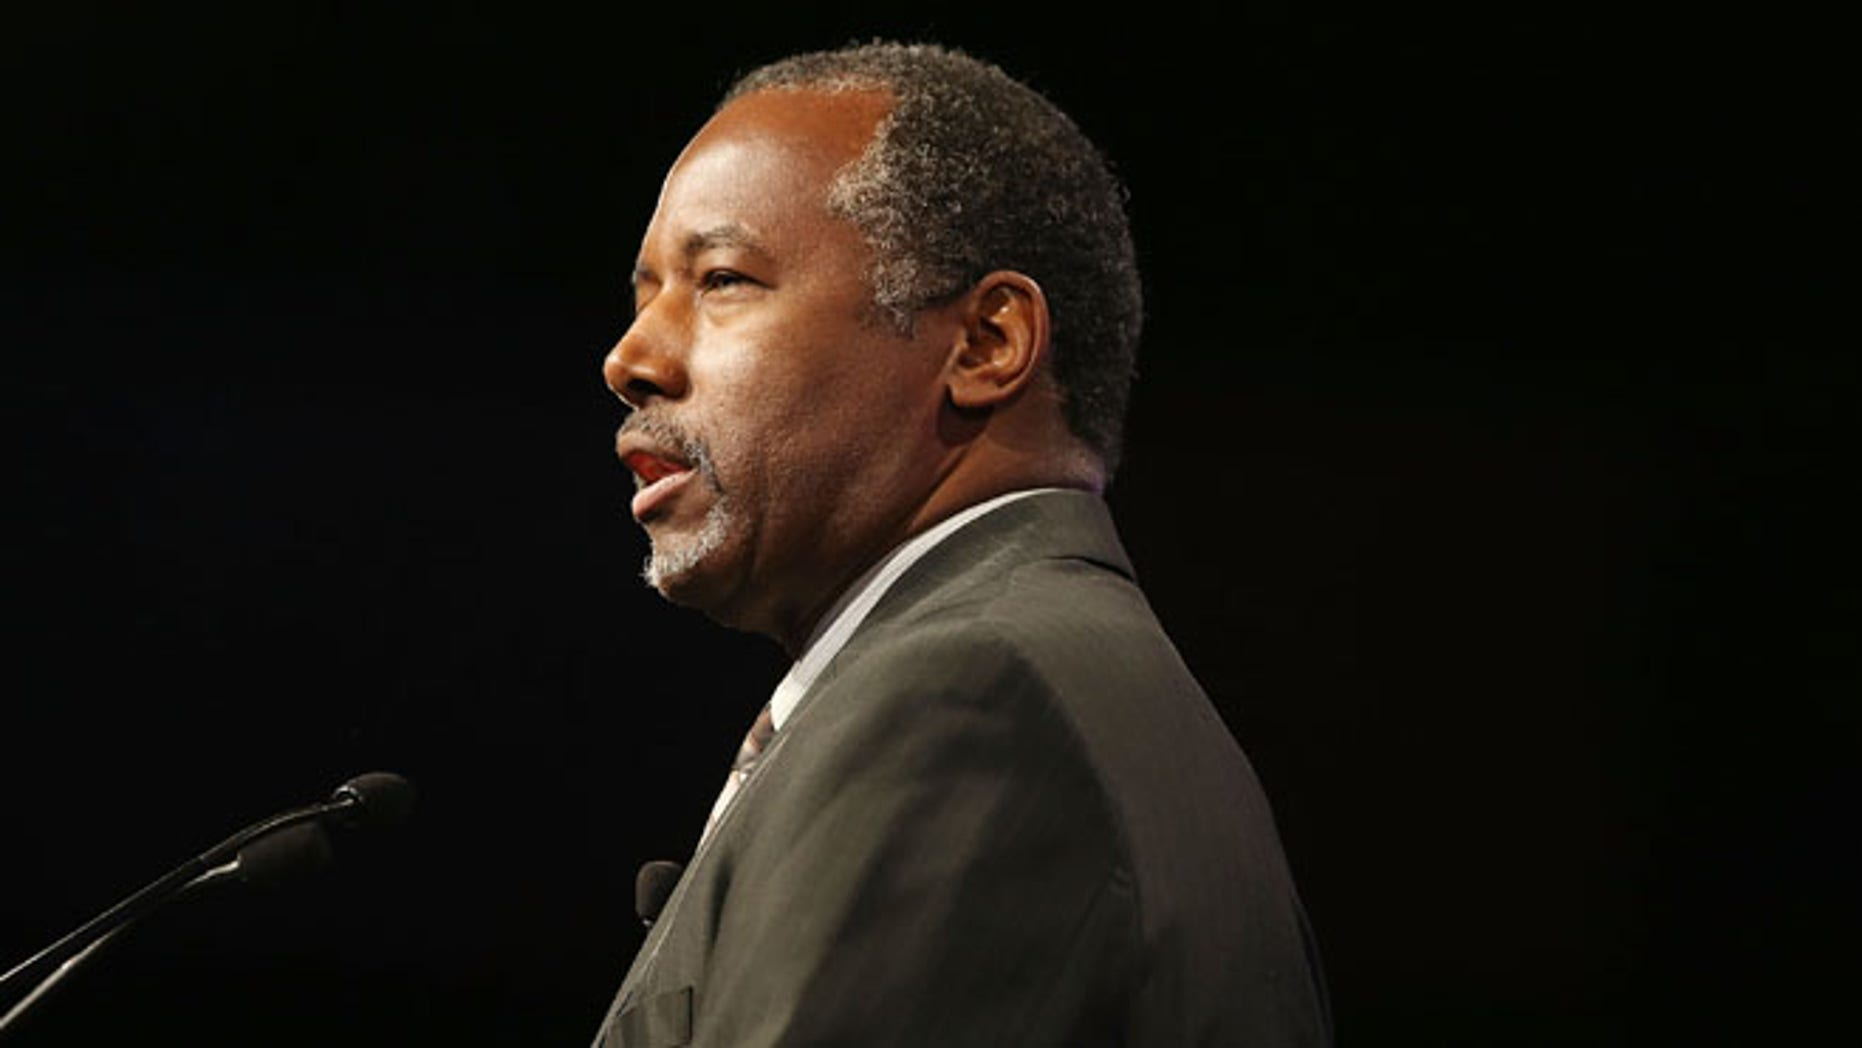 Republican Presidential hopeful Ben Carson speaks during the Presidential Candidates Plenary at the National Urban League conference in the Fort Lauderdale Convention Center on July 31, 2015 in Fort Lauderdale, Florida.  (Photo by Joe Raedle/Getty Images)